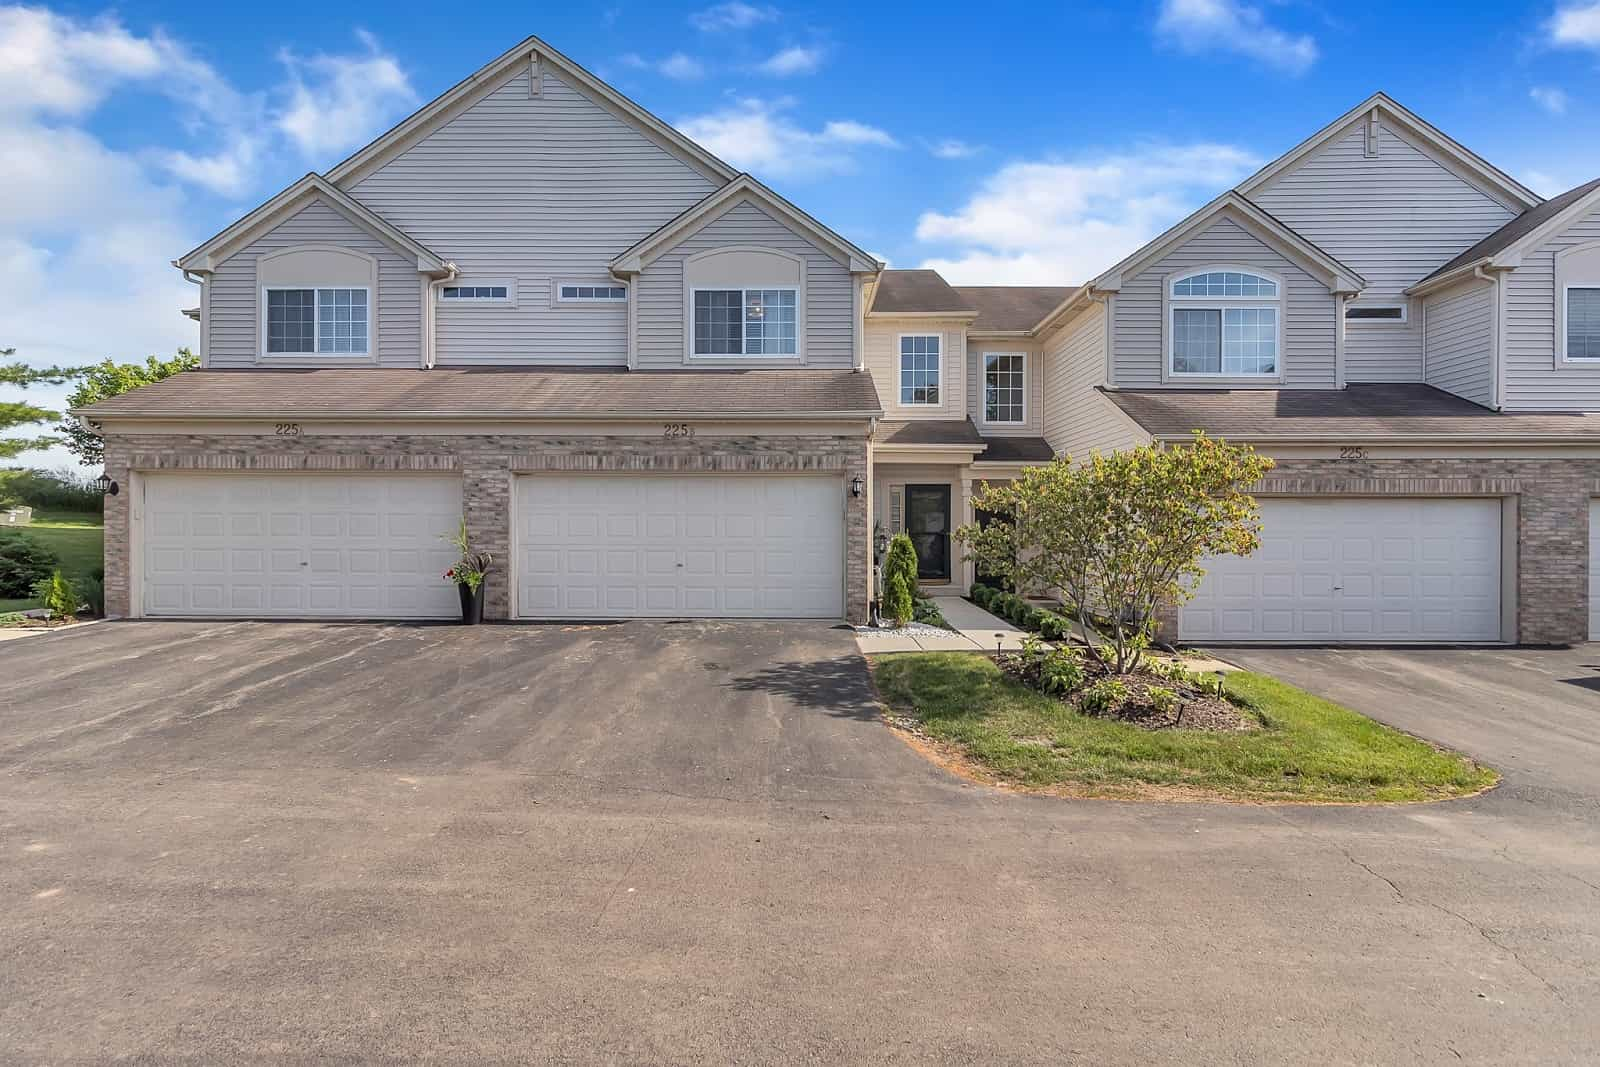 Real Estate Photography in Elgin - IL - USA - Front View